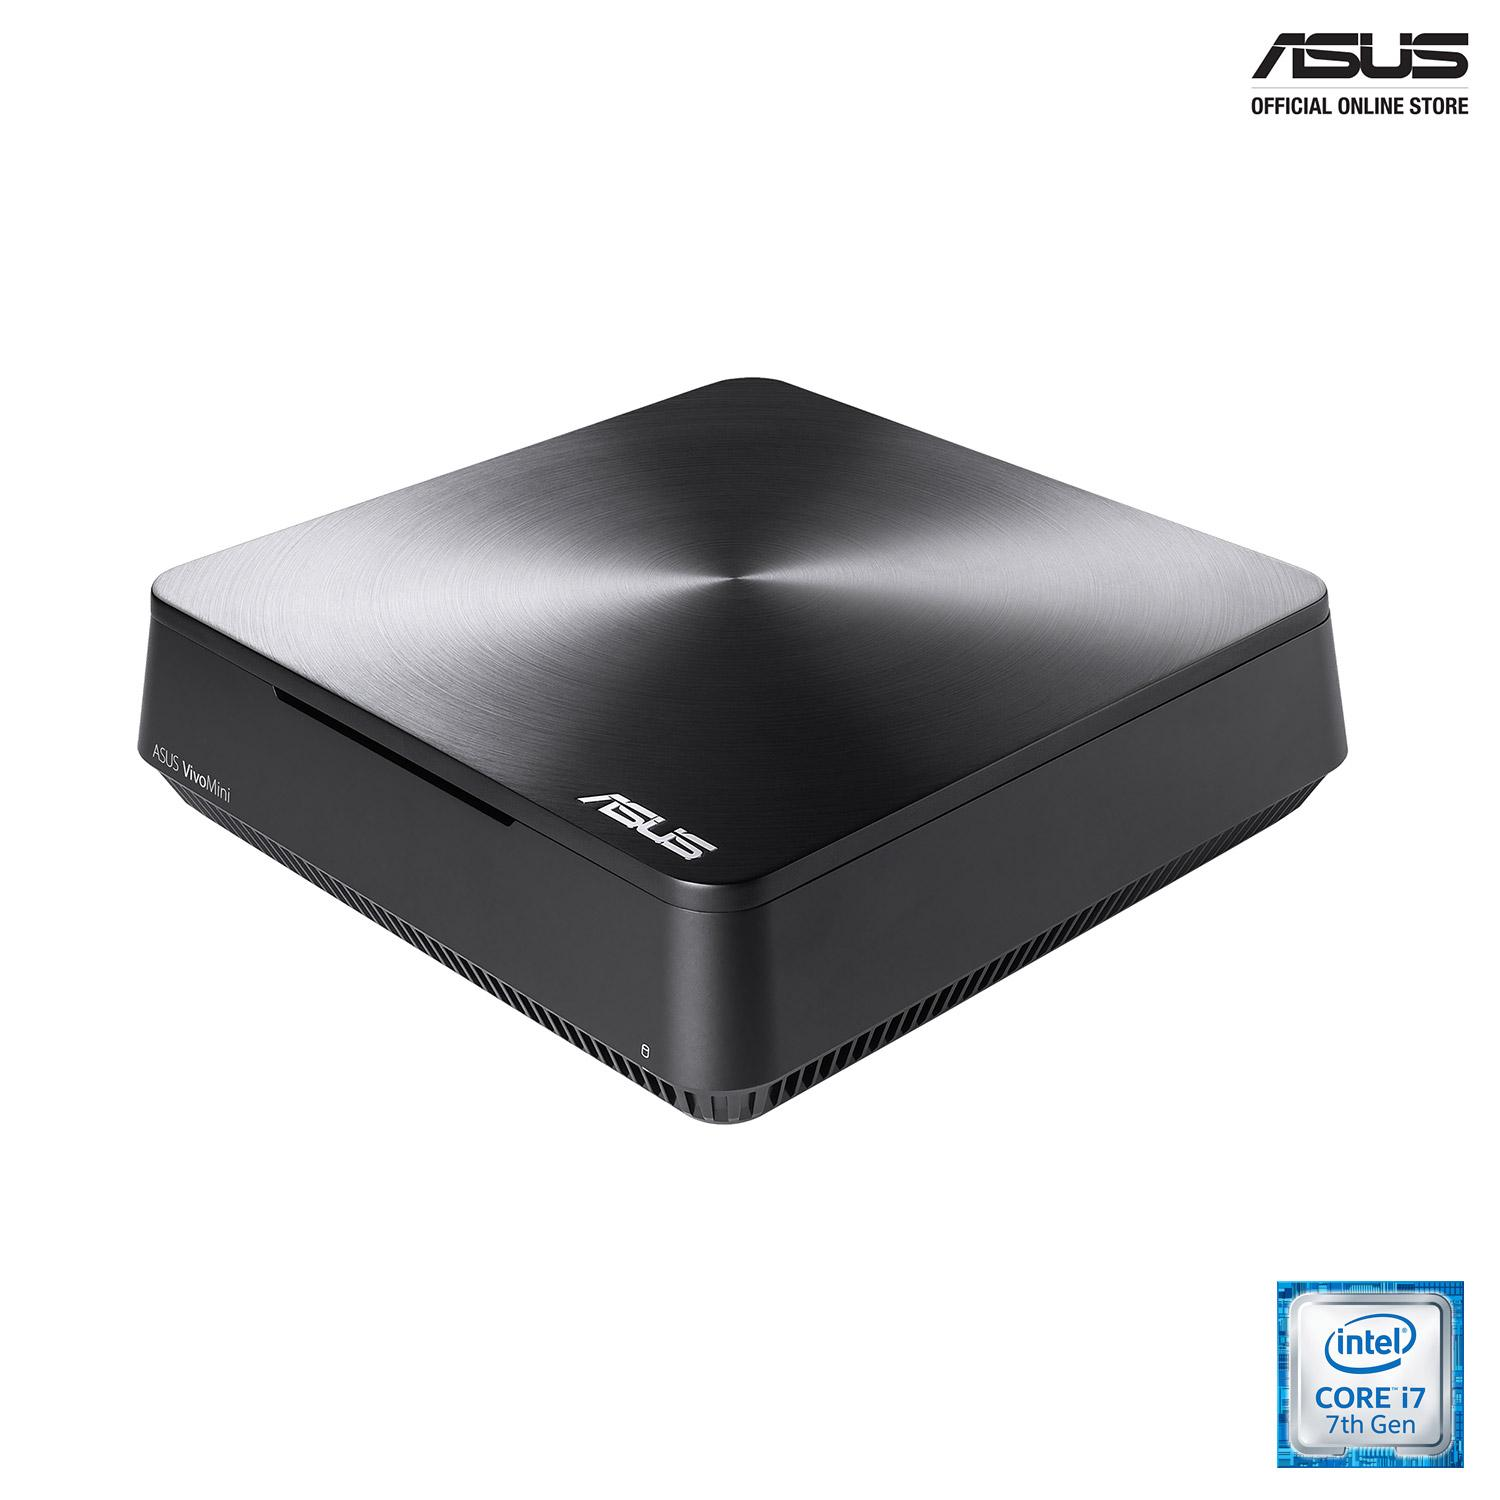 ASUS VivoMini VM65N (VM65N-G115Z) Powerful home entertainment mini PC with up to an Intel Core i5 processor, Windows 10 Home, Intel HD Graphics 630 graphics, DDR4 RAM, 4K UHD, 802.11ac Wi-Fi and Vivo DualBay (accommodate up to two 2.5-inch SSD/HDD)